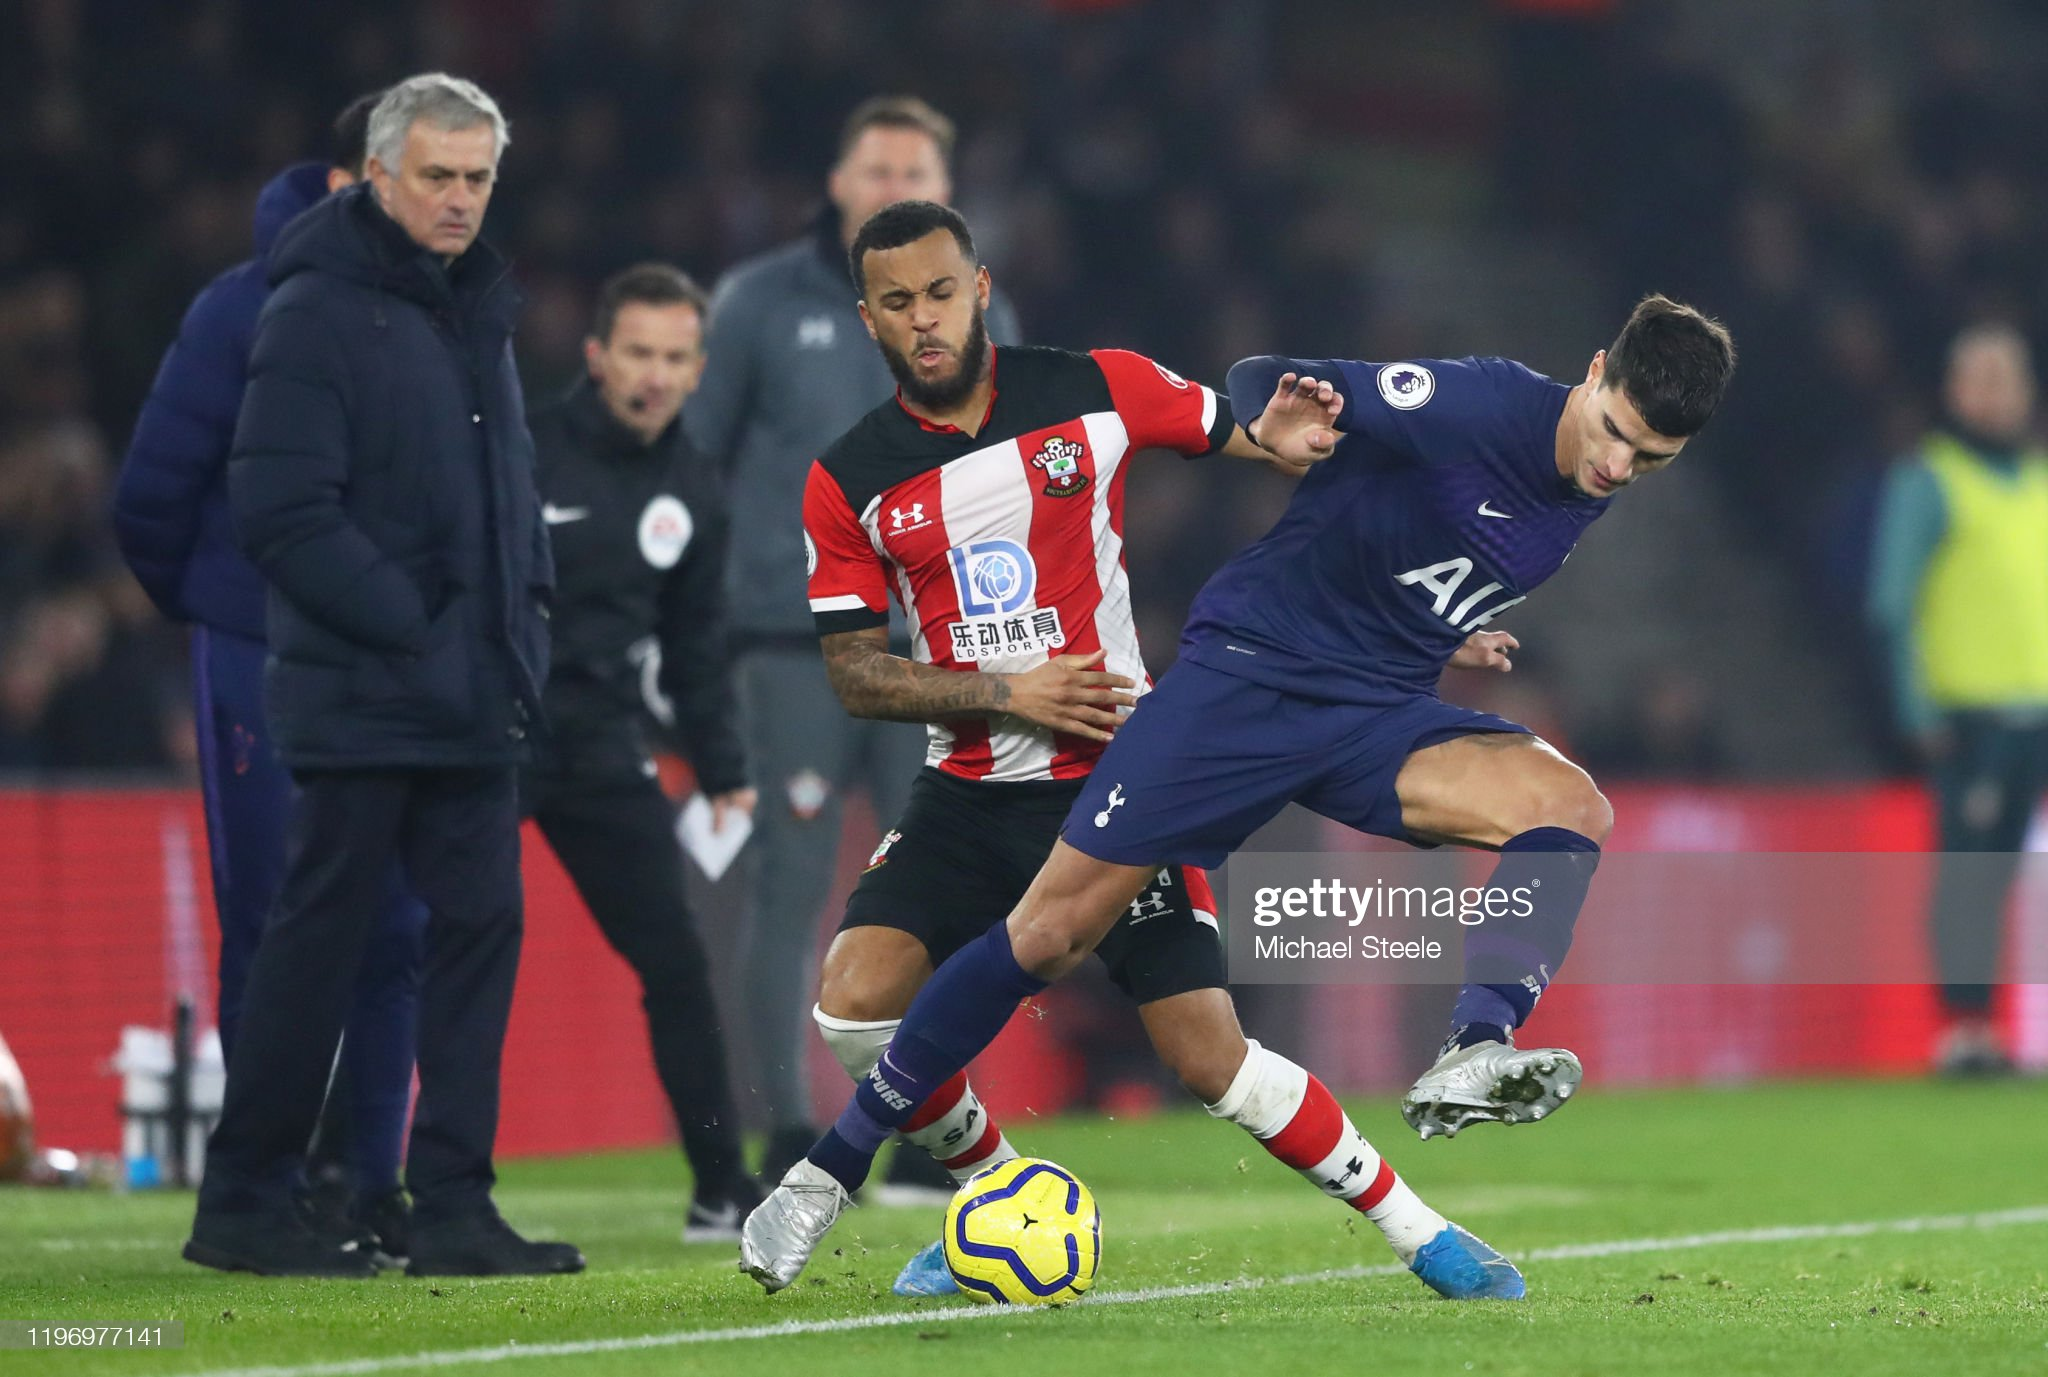 Southampton v Tottenham preview, prediction and odds